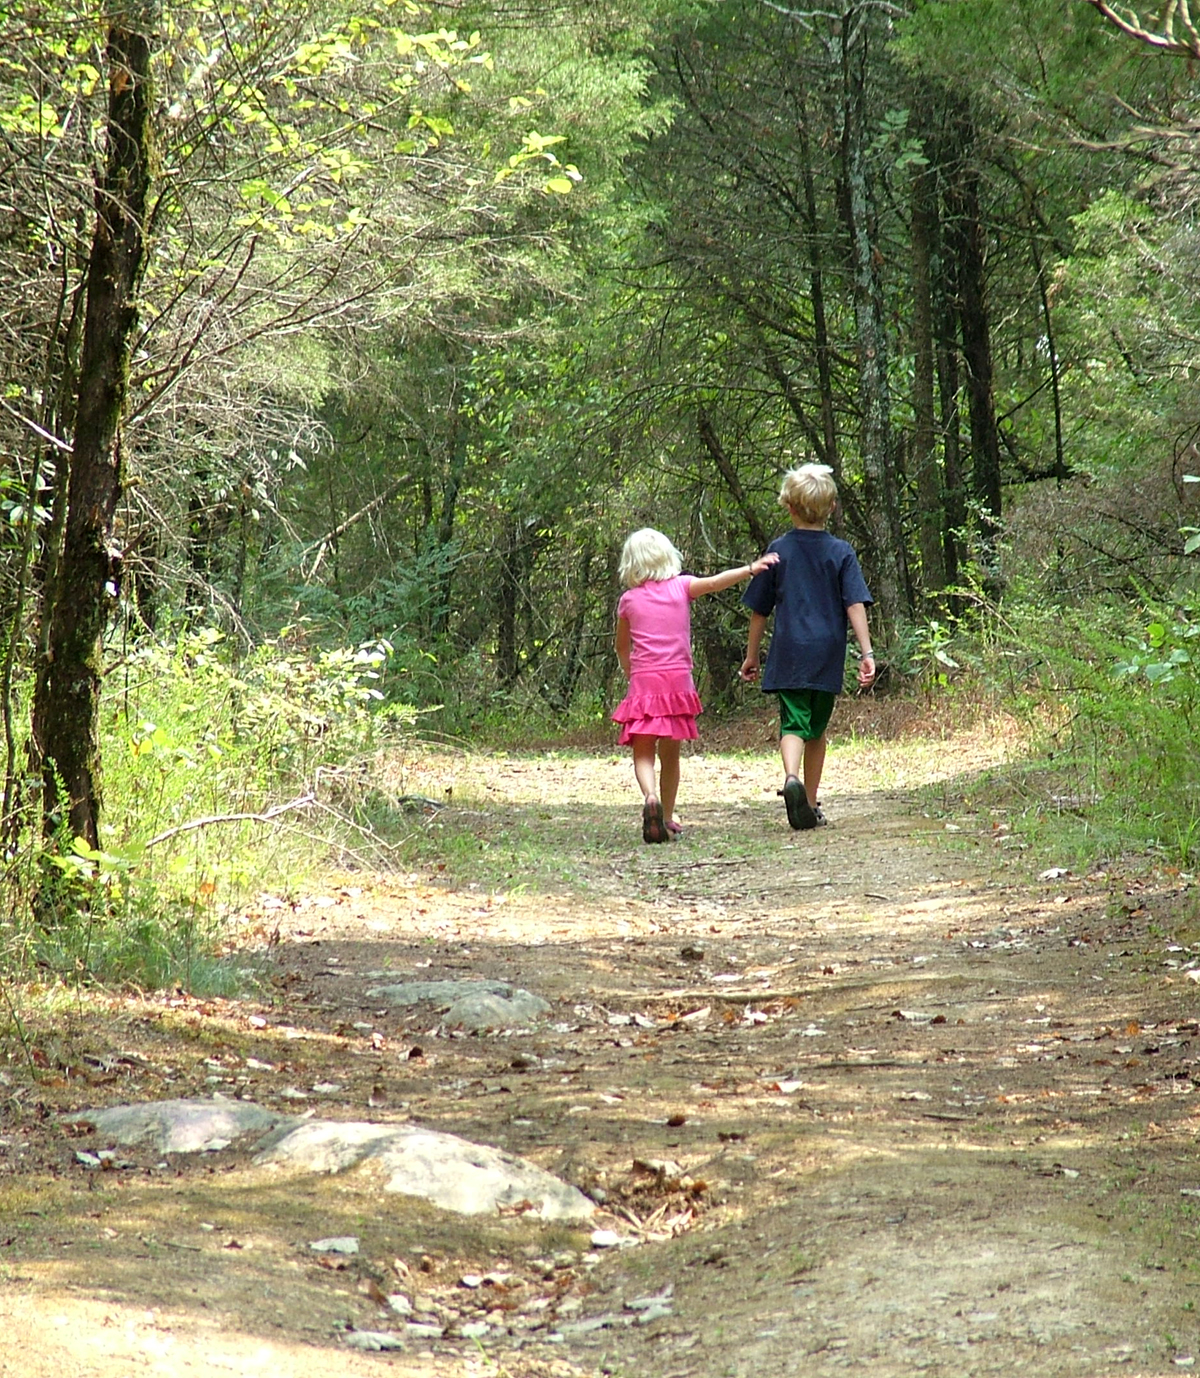 brother-and-sister-walk-in-woods-1-1431880.jpg